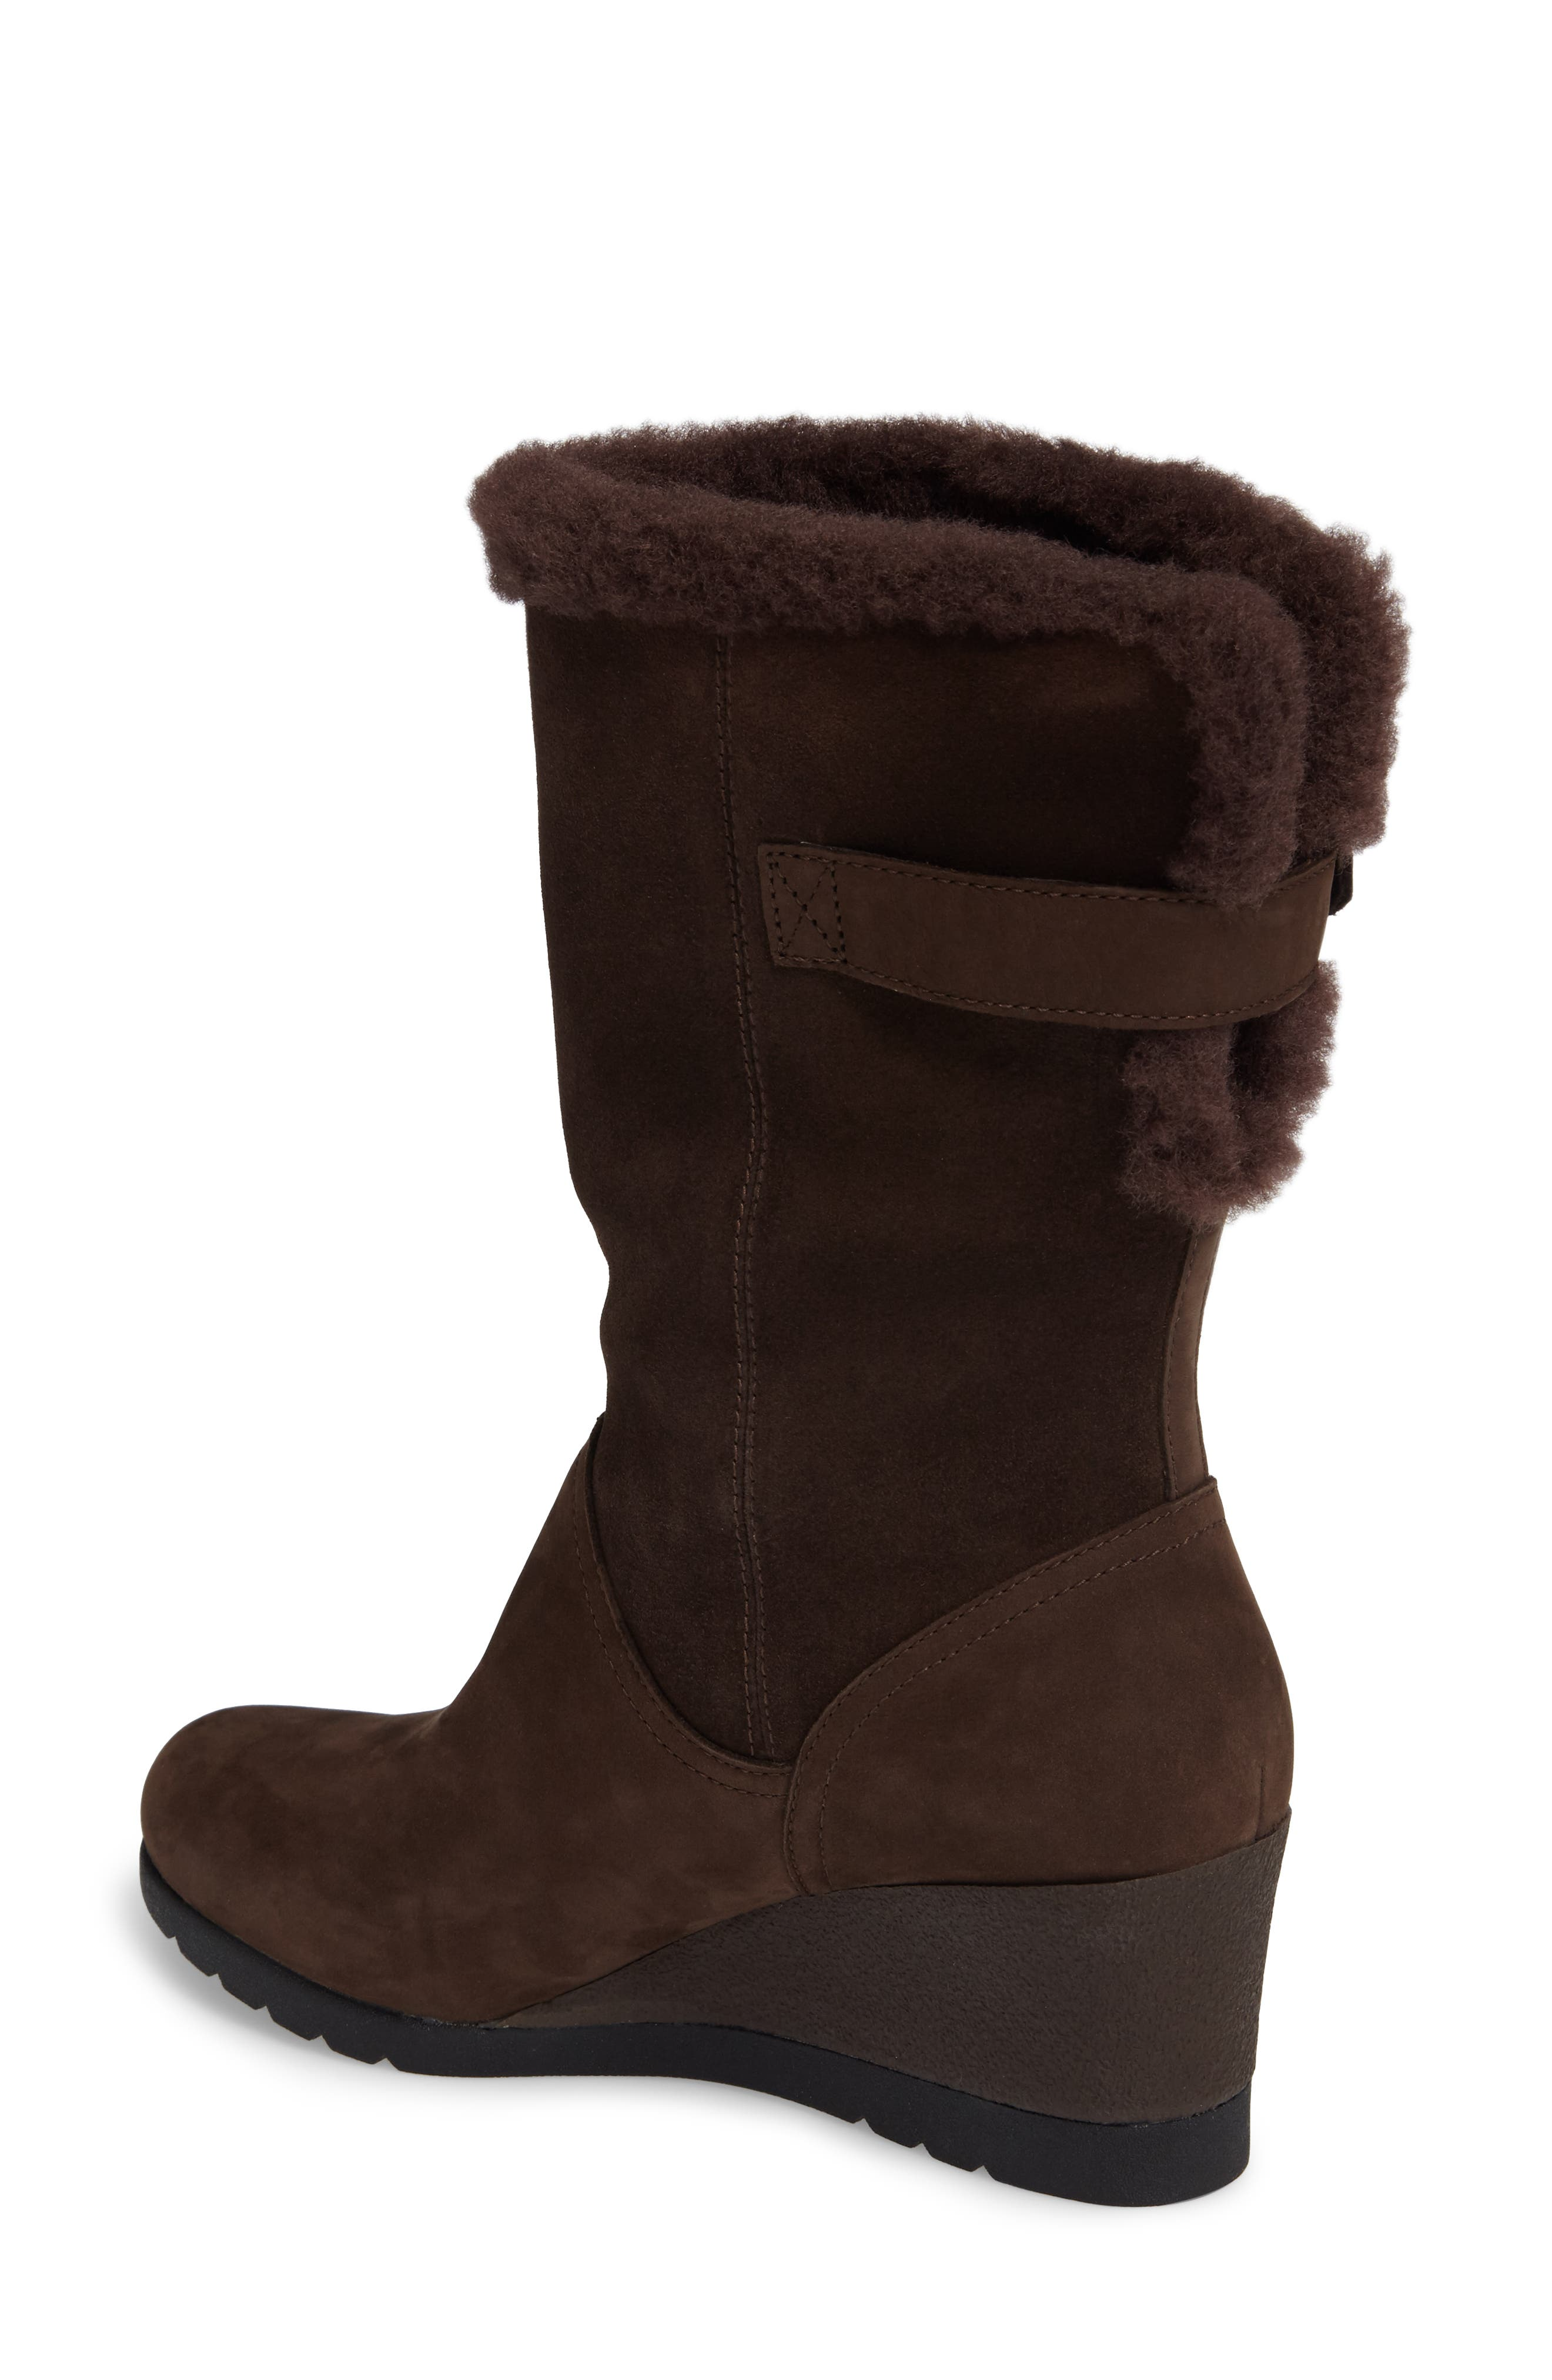 Edelina Waterproof Wedge Boot,                             Alternate thumbnail 2, color,                             Grizzly Leather